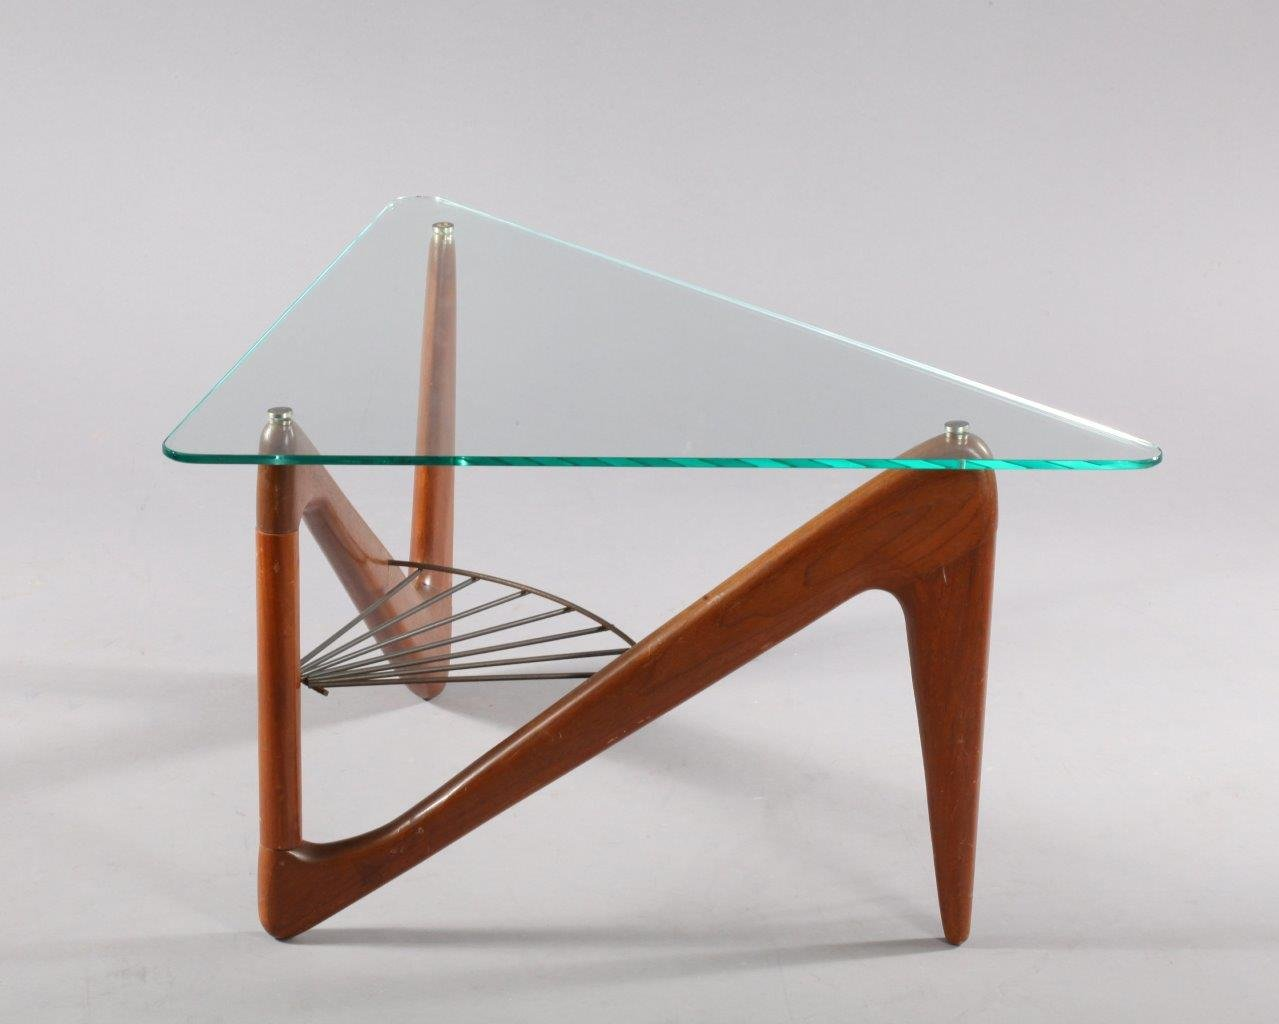 Triangular Rosewood Coffee Table by Louis Sognot 1950s for sale